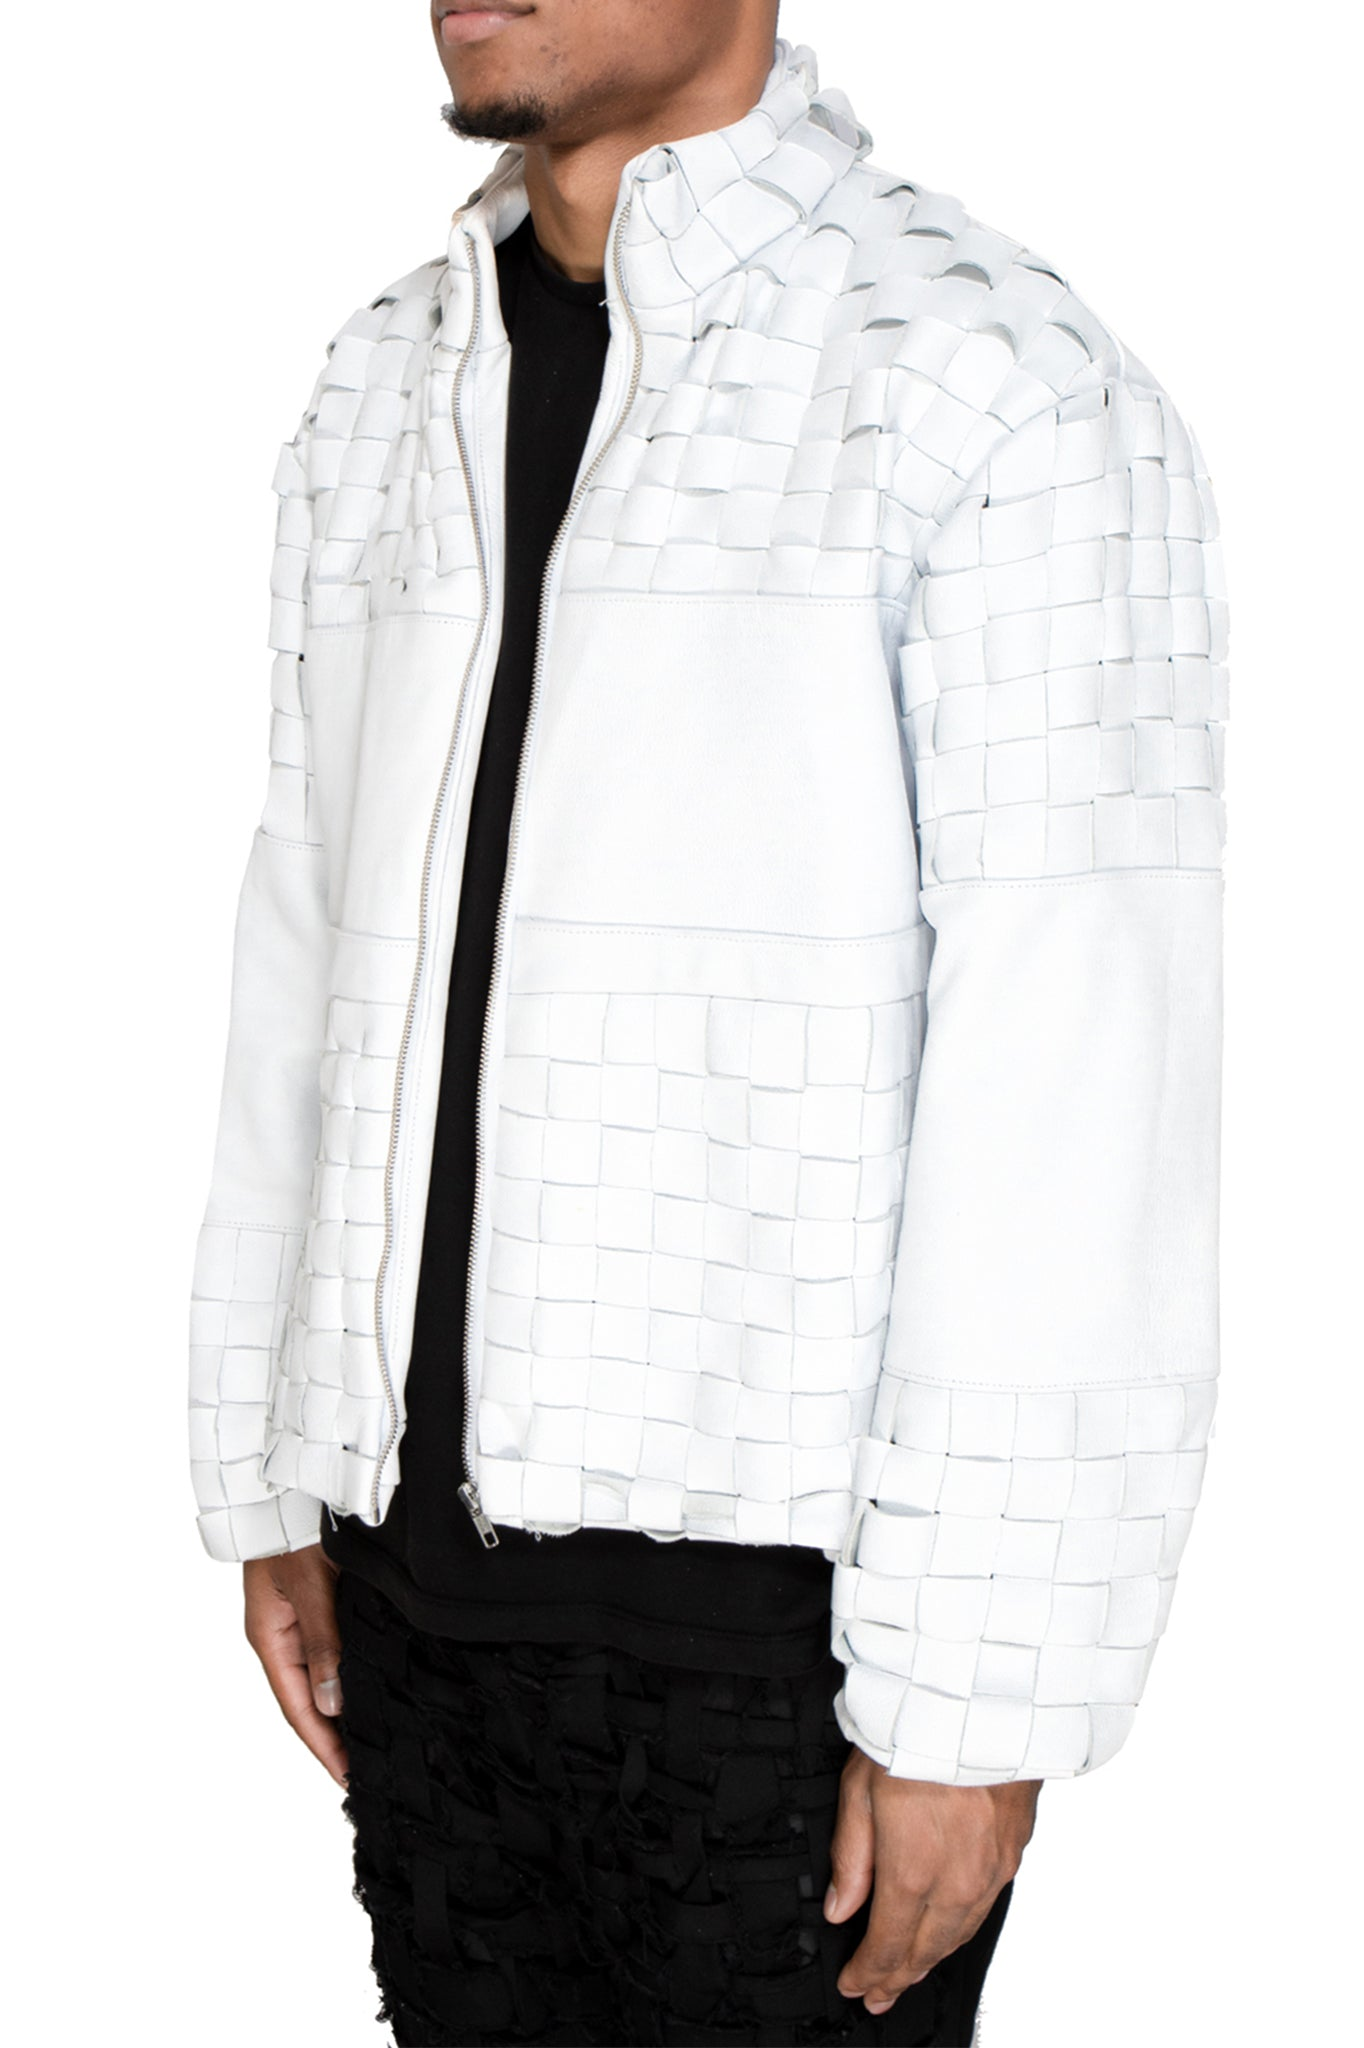 Raus White Leather Jacket with Woven Details